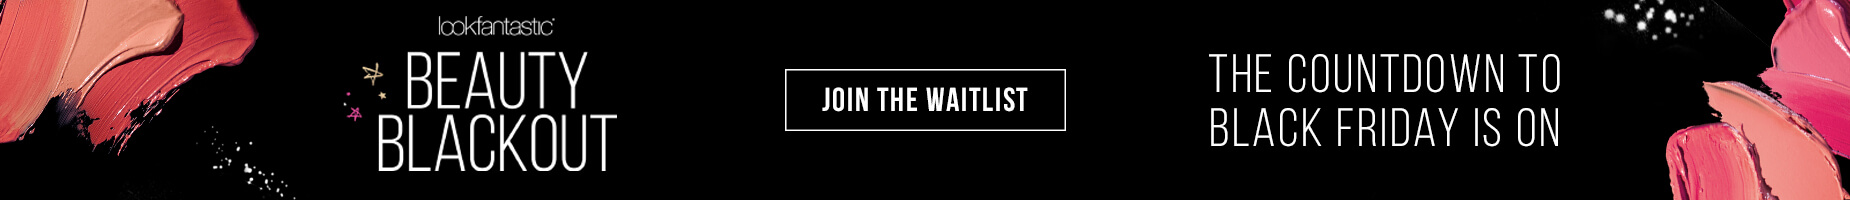 The countdown to Black Friday is on.... Join the Waitlist.